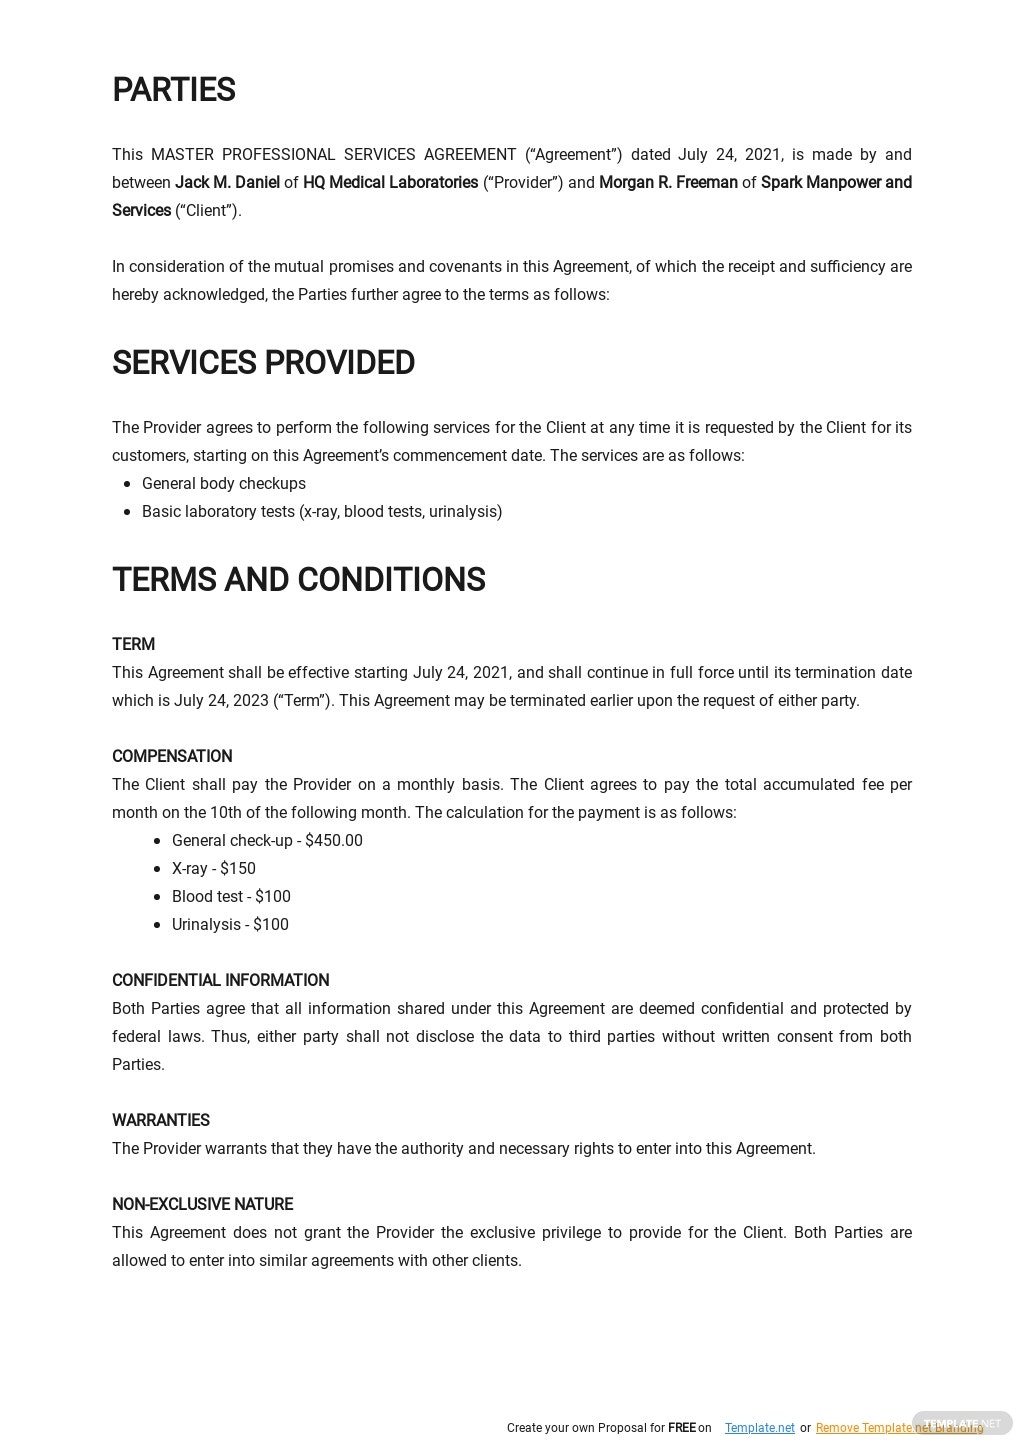 Master Professional Services Agreement Template 1.jpe